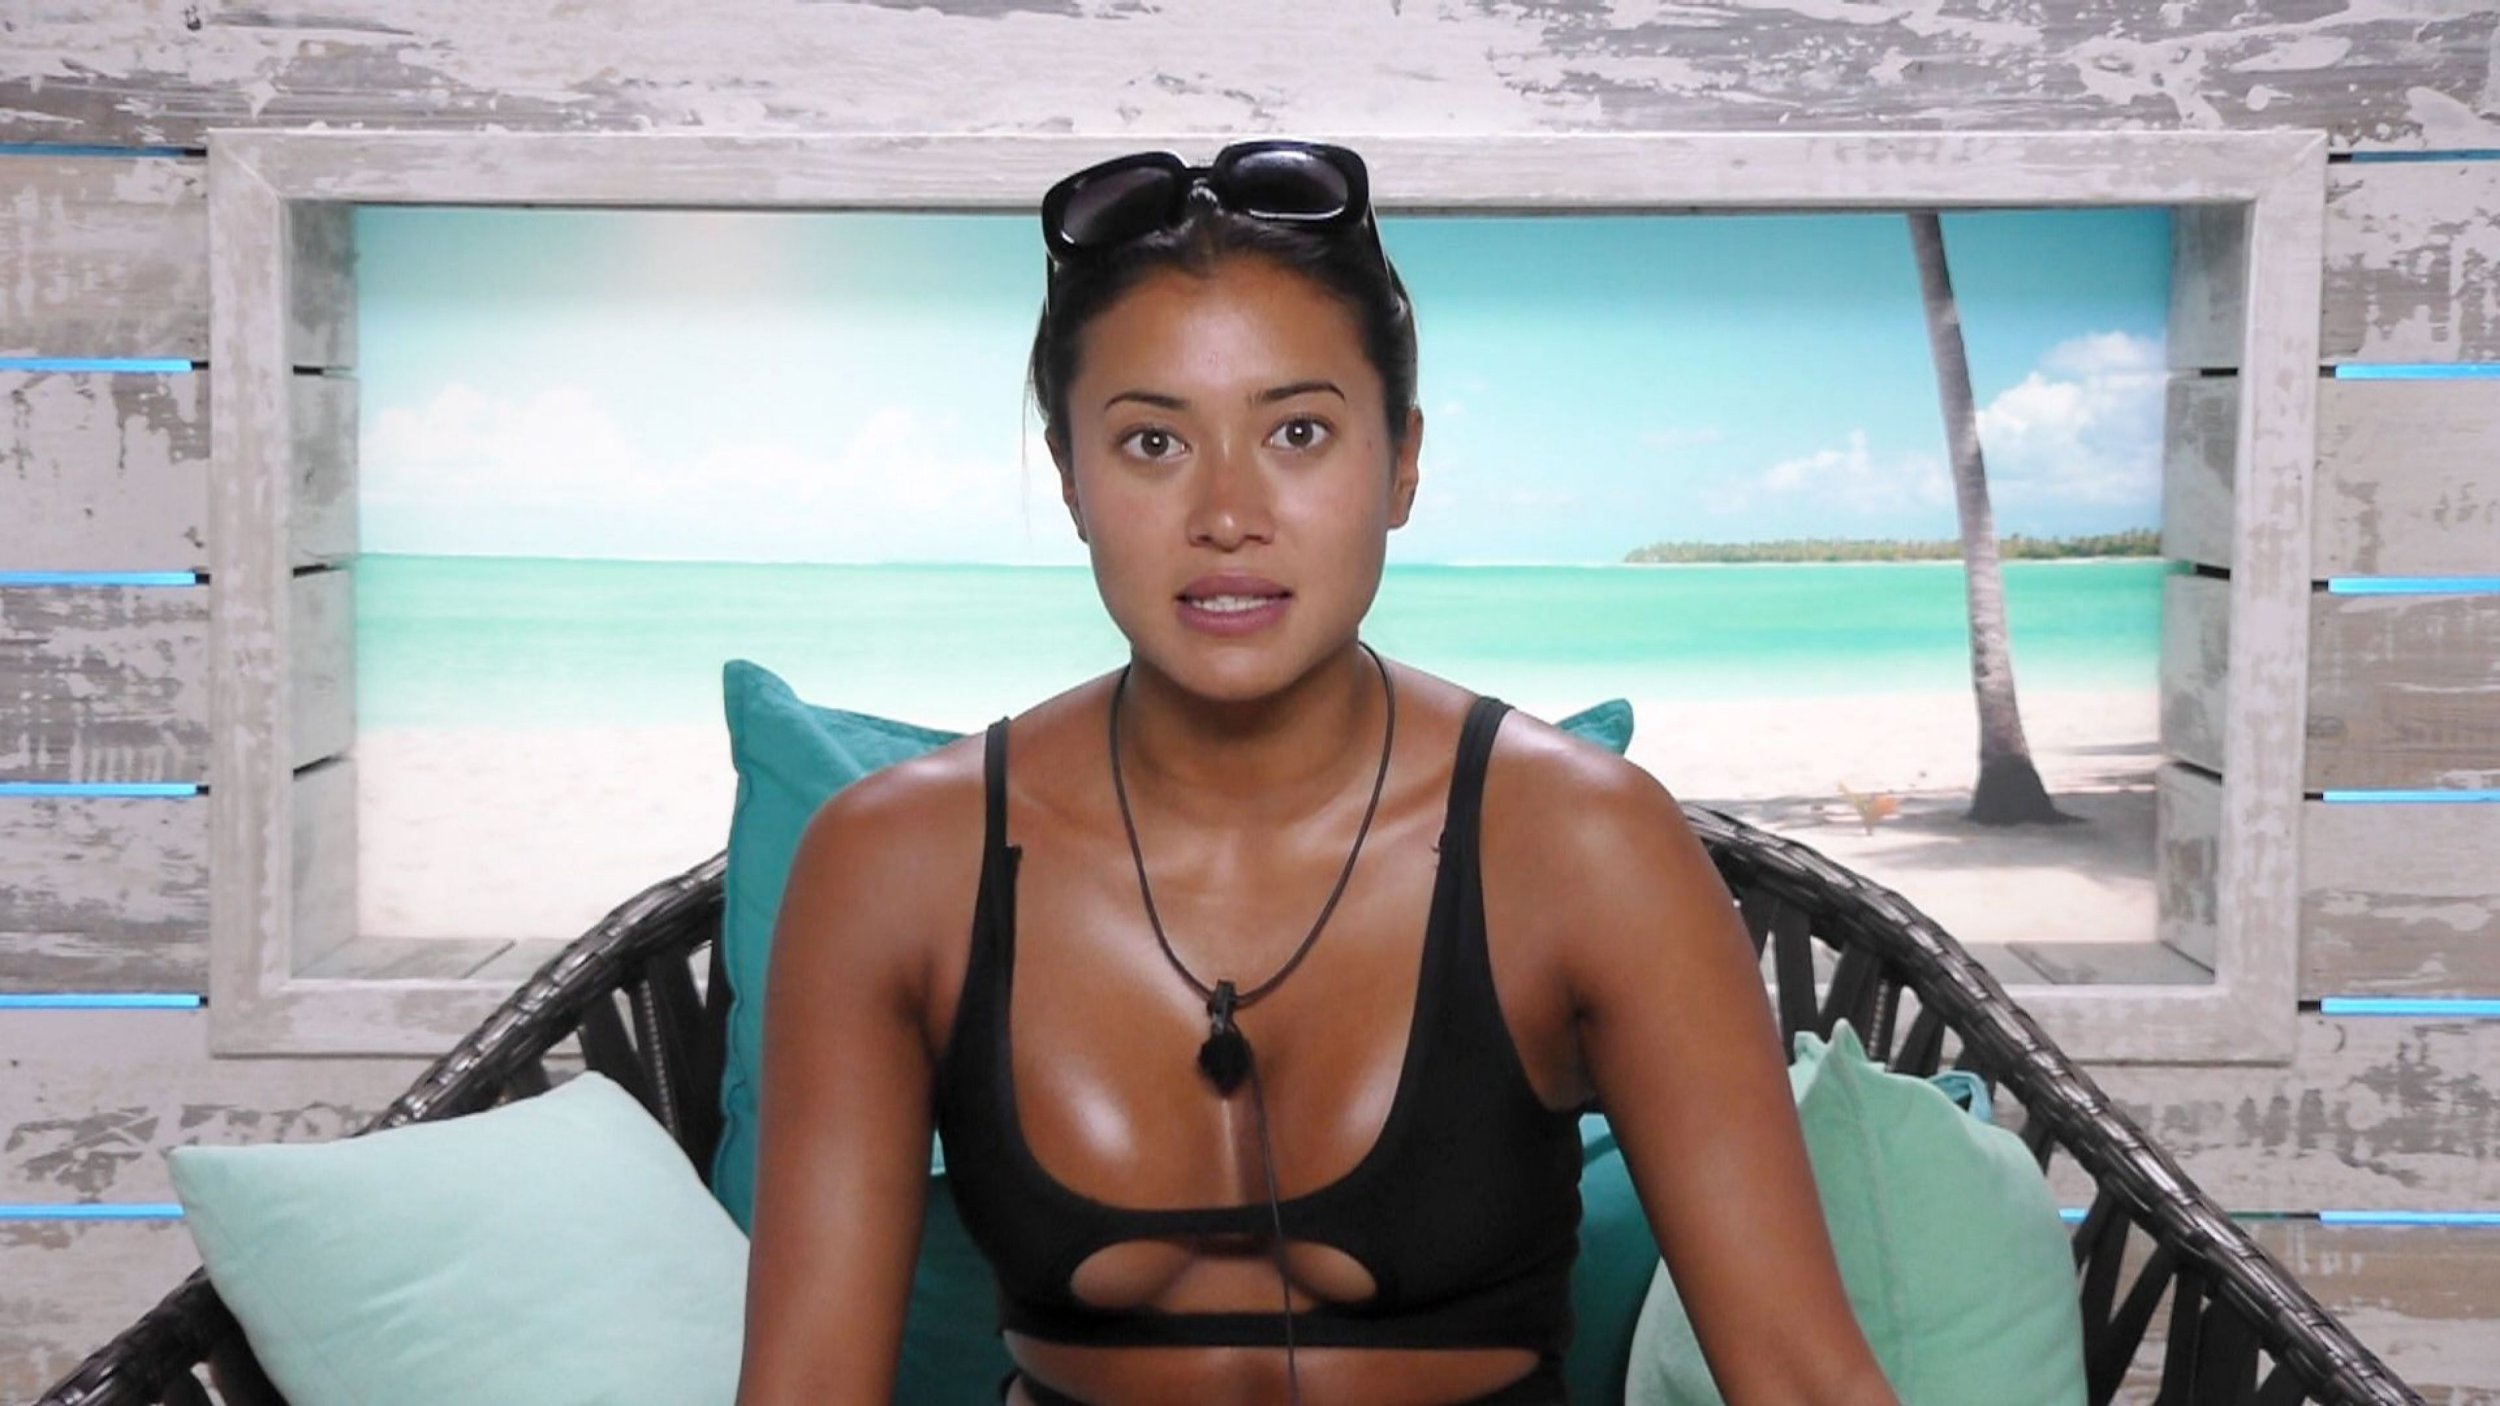 Love Island's Kaz Crossley claims contestants put on 'racist accents' to have secret conversations